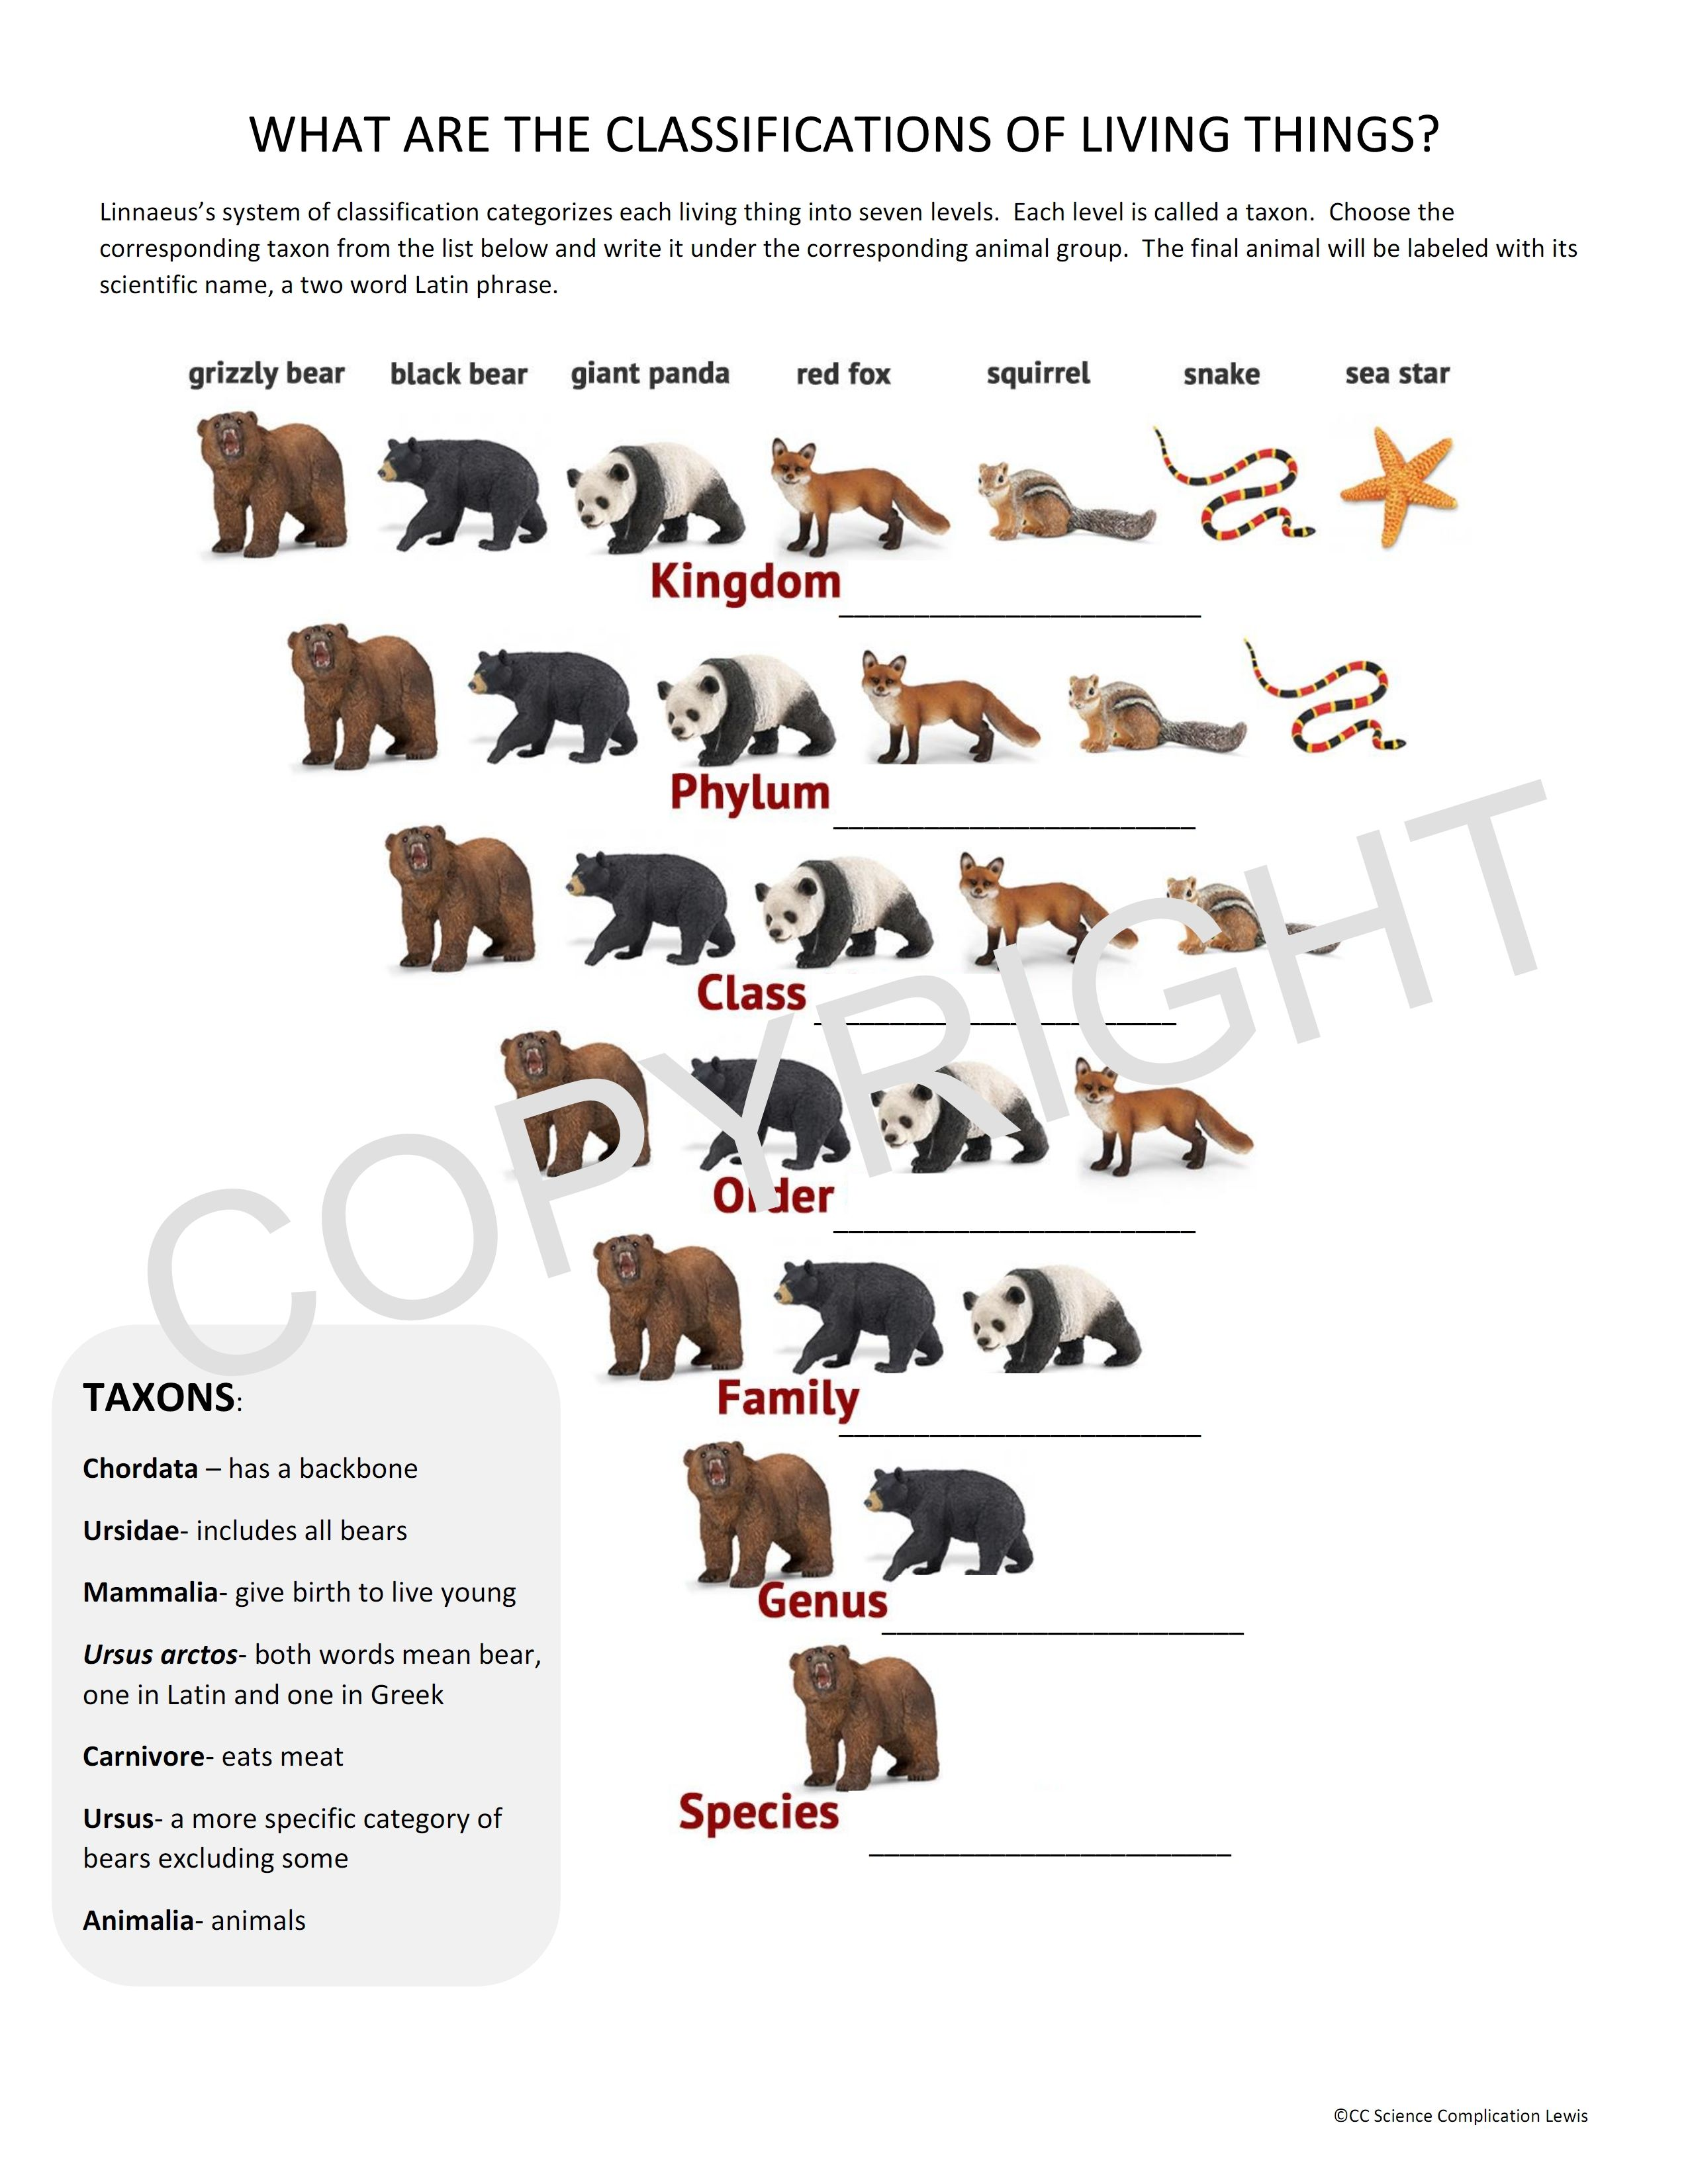 Worksheet For The Classification Of Living Things Classical Conversations Scien Classical Conversations Science Worksheets Classical Conversations Foundations